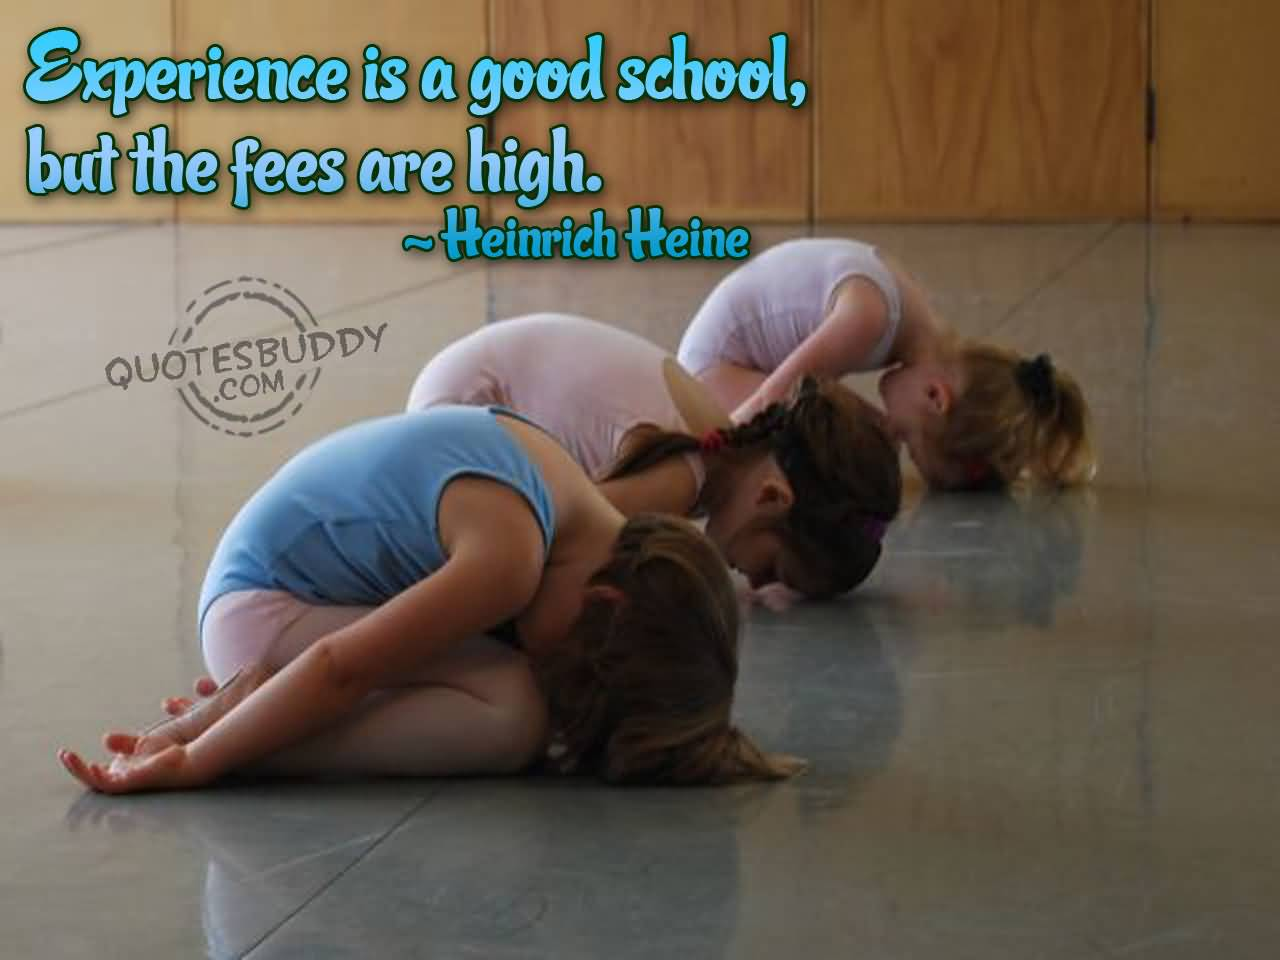 Experience Quotes experience is a good school but the fees are high